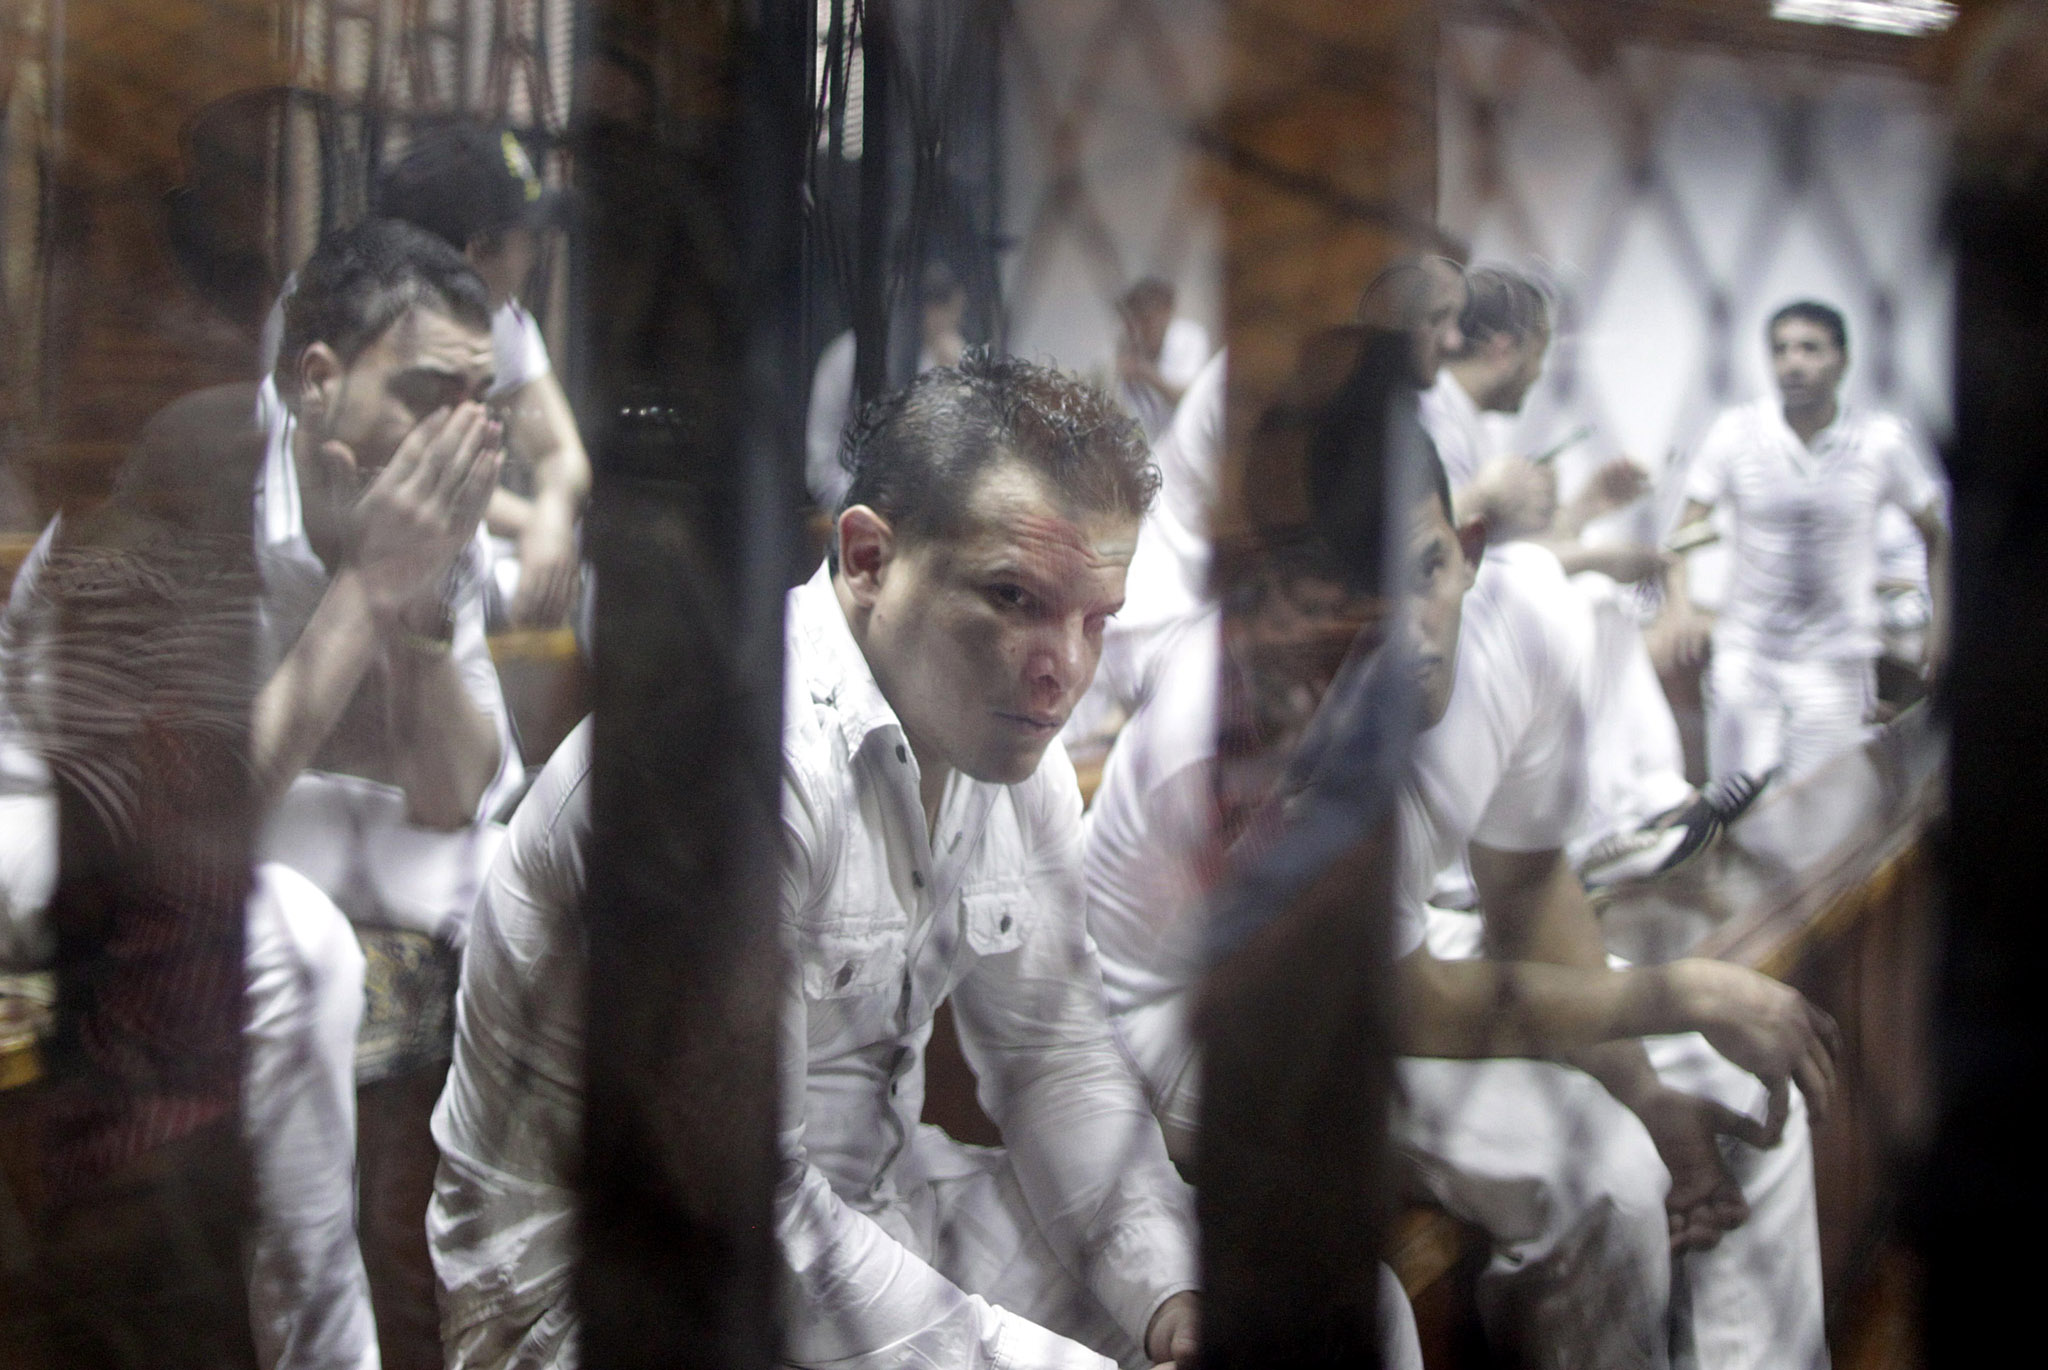 Egypt court sentences 11 to death over 2012 soccer riots...epaselect epa04790463 Defendants on trial for the deaths in a riot following a football match in Port Said in February 2012, stand behind bars during their trial in Cairo, Egypt, 09 June 2015. An Egyptian court on 09 June 2015 confirmed the death sentences of 11 men for their part in the country's worst-ever football-related violence. The 01 February 2012 riots left 74 dead after clashes between fans of Port Said's al-Masry team and visiting Cairo team al-Ahly. The sentences came at the end of a retrial after the country's top appeals court overturned a 2013 verdict in which 21 defendants were condemned to death.  EPA/KHALED ELFIQI